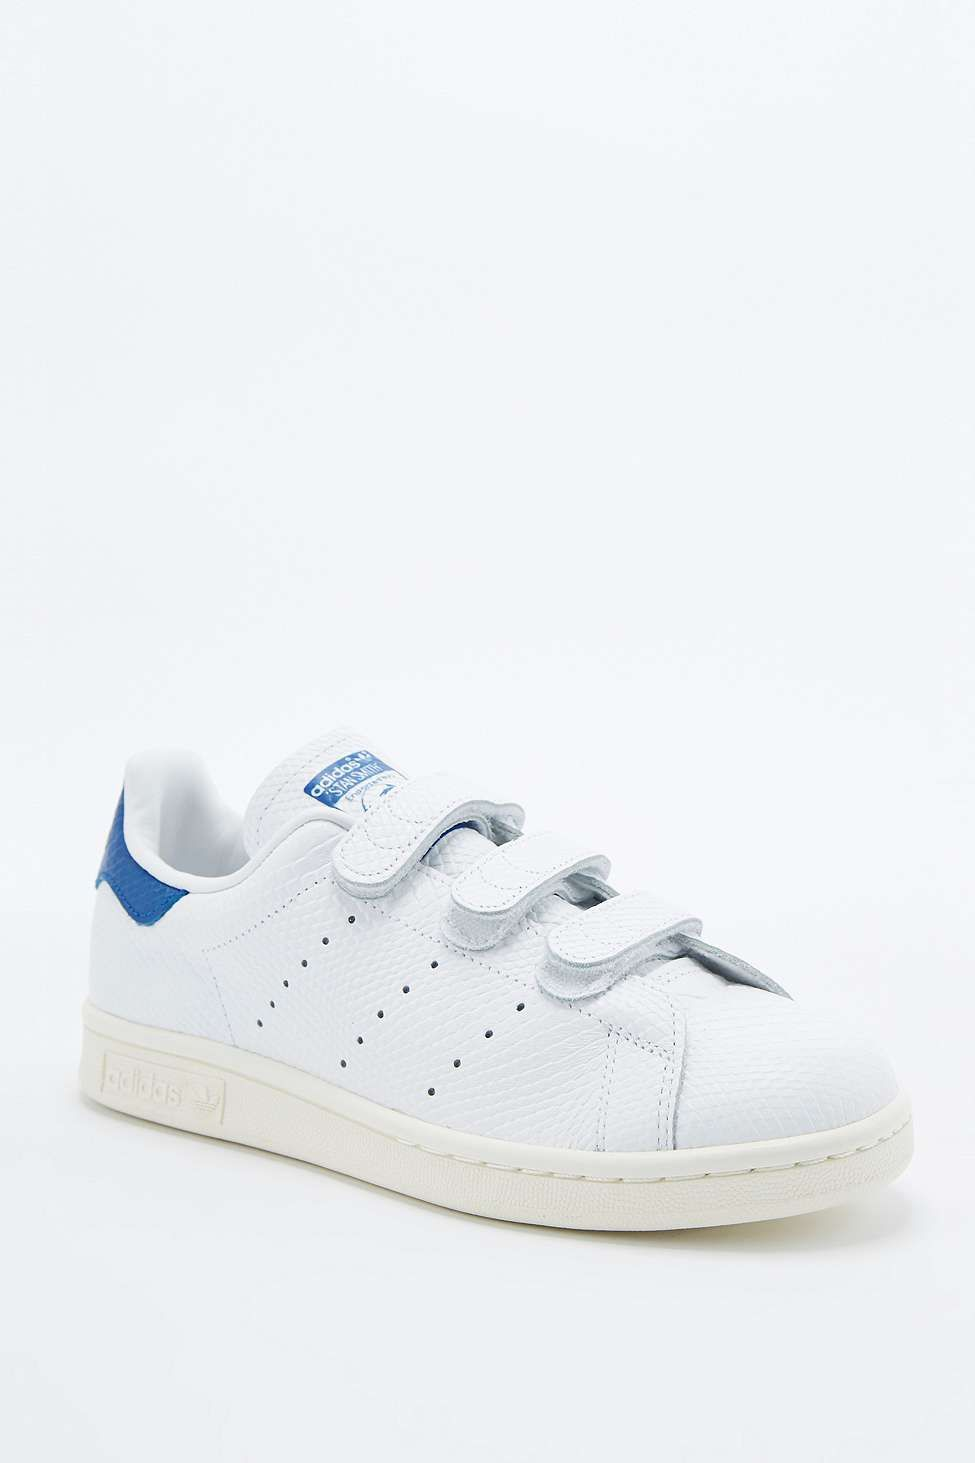 new arrival 1681d 7bcb2 adidas Originals Stan Smith White   Blue Velcro Trainers